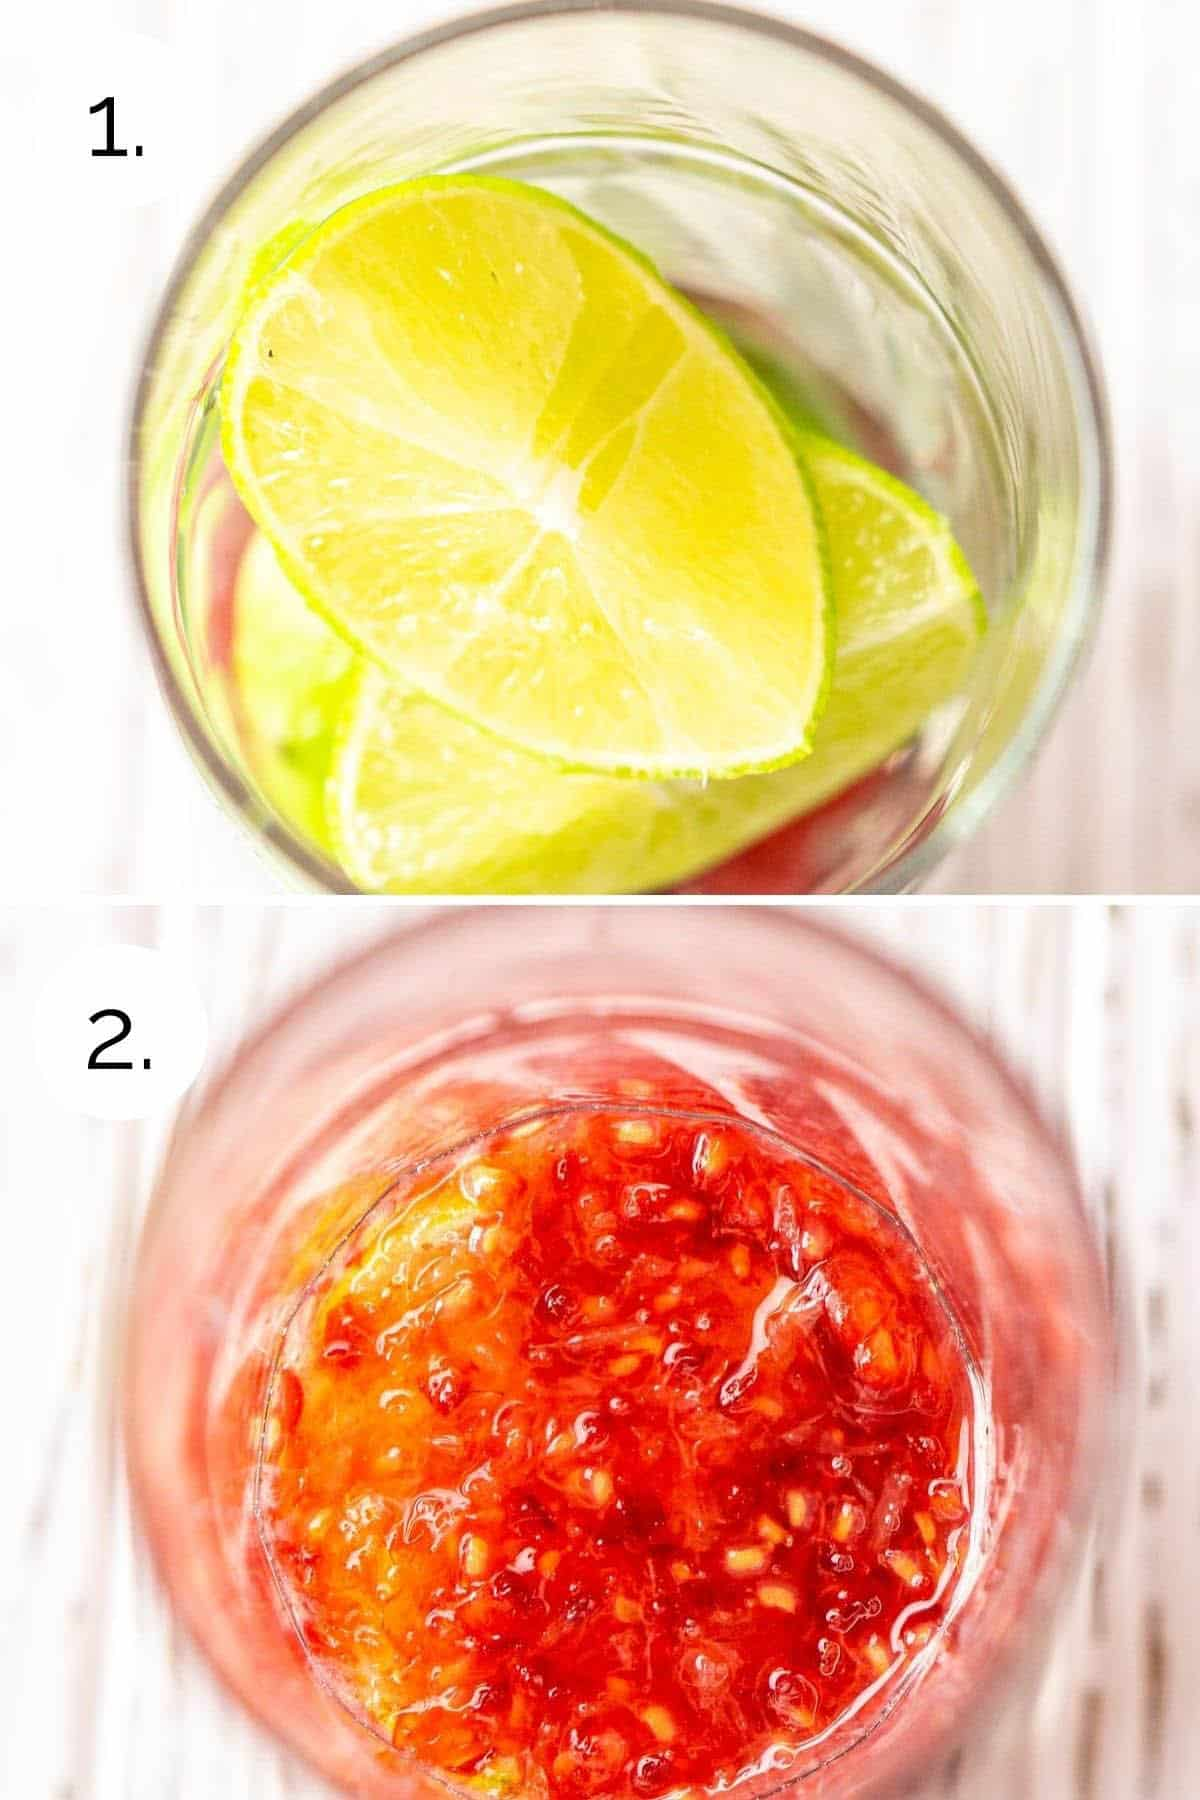 A collage showing the process of muddling the fruit.